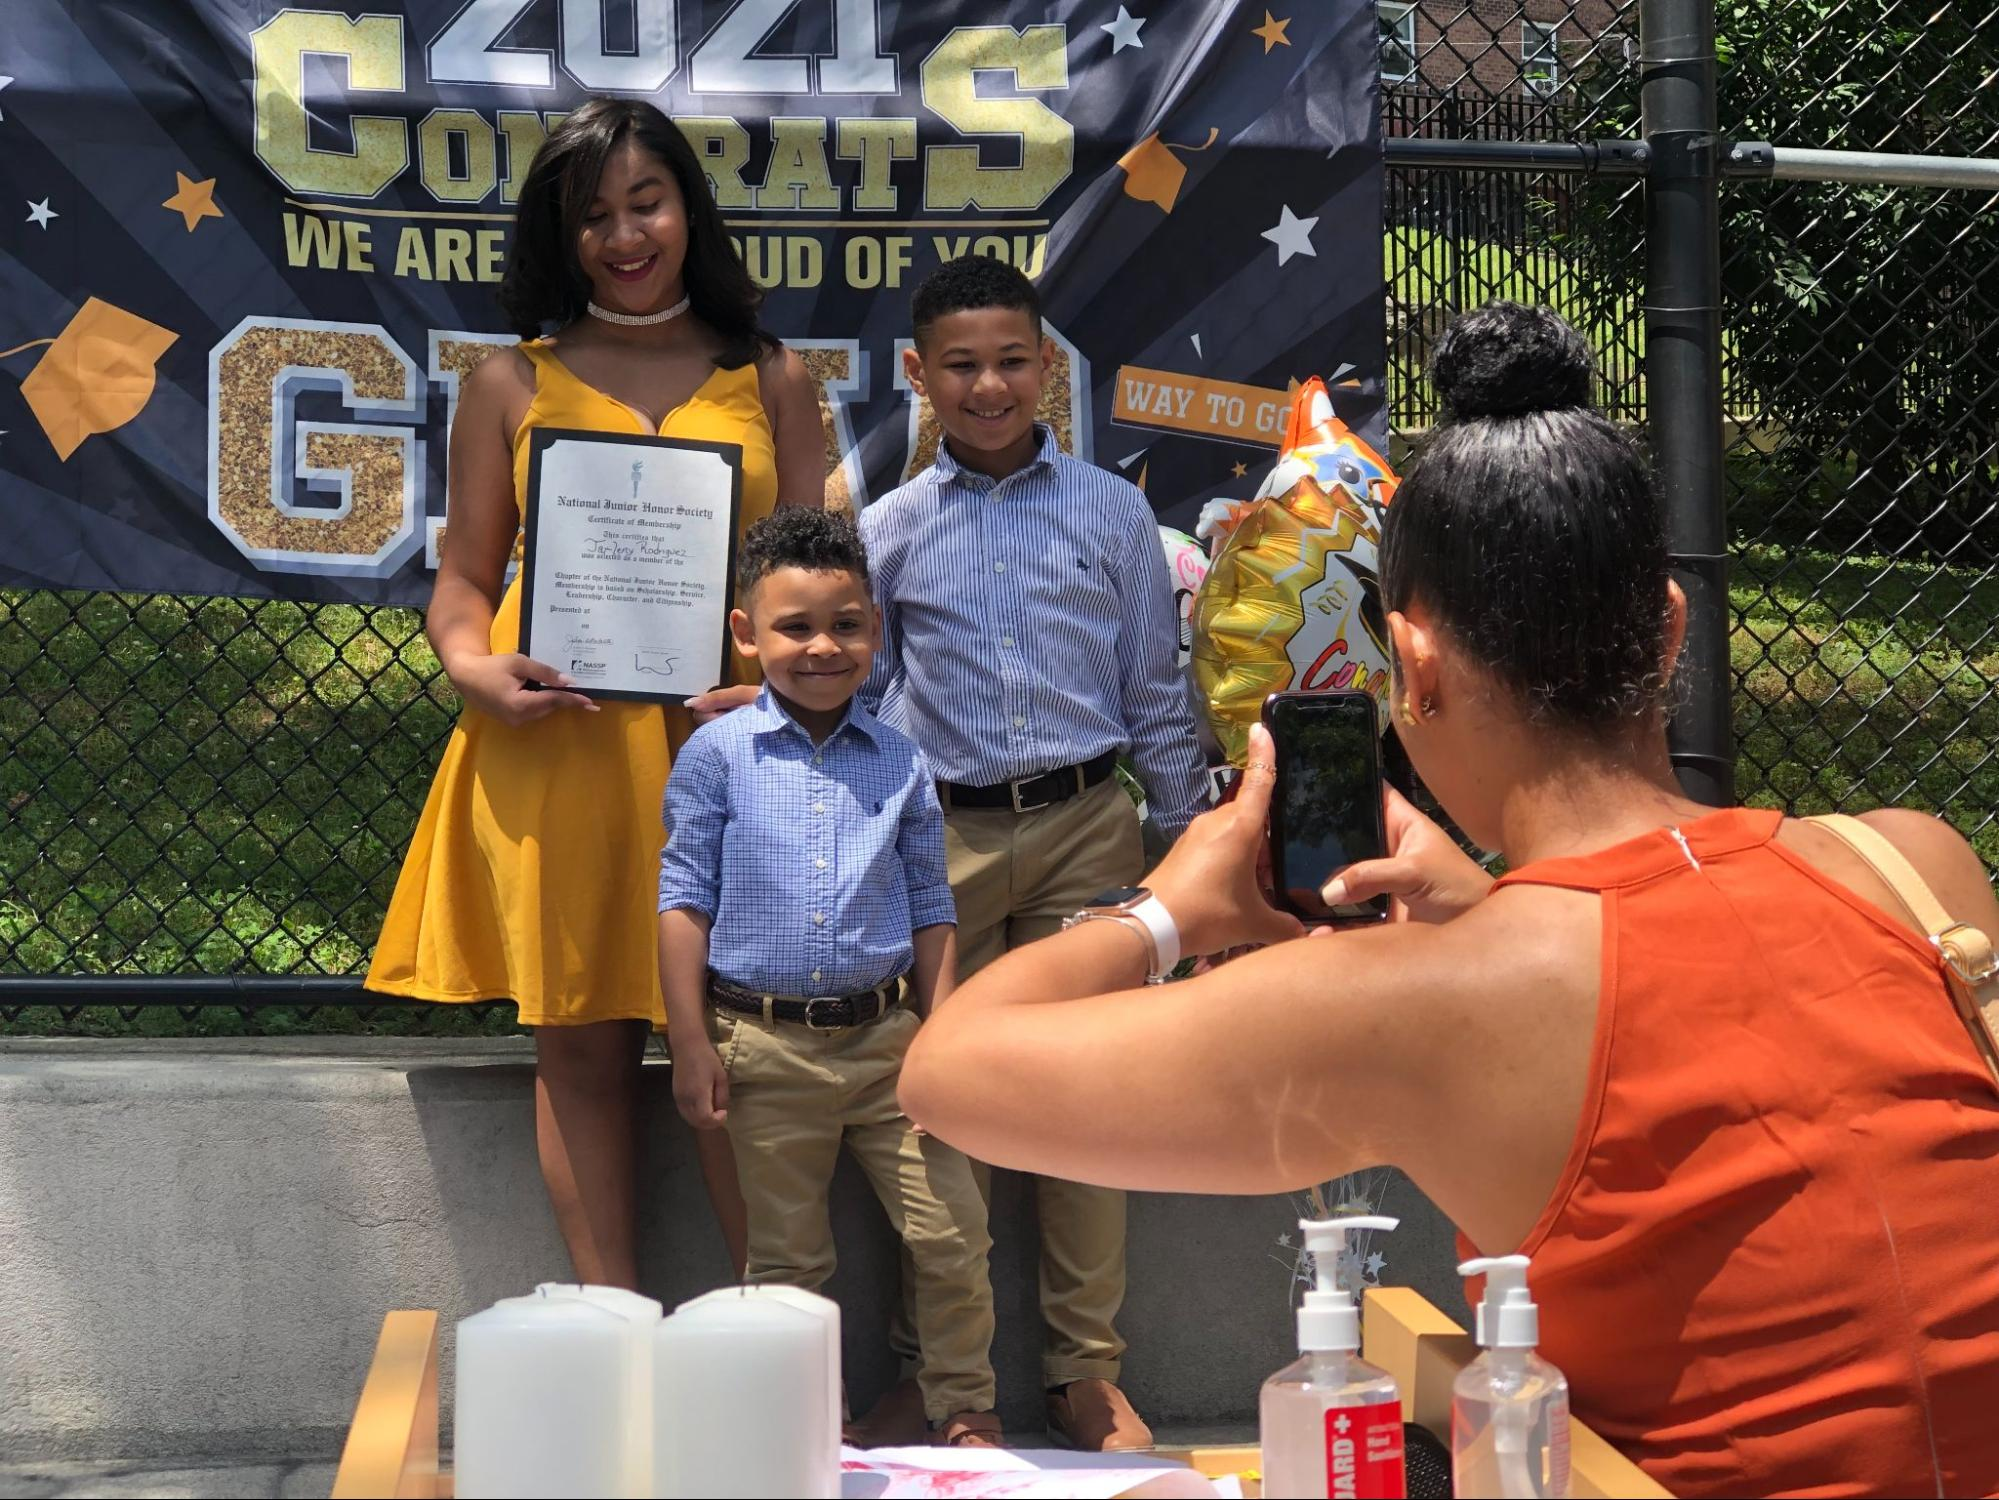 An 8th grader in a yellow dress holds her diploma while her brothers, in blue shirts and slacks, pose with her as their mother takes their picture